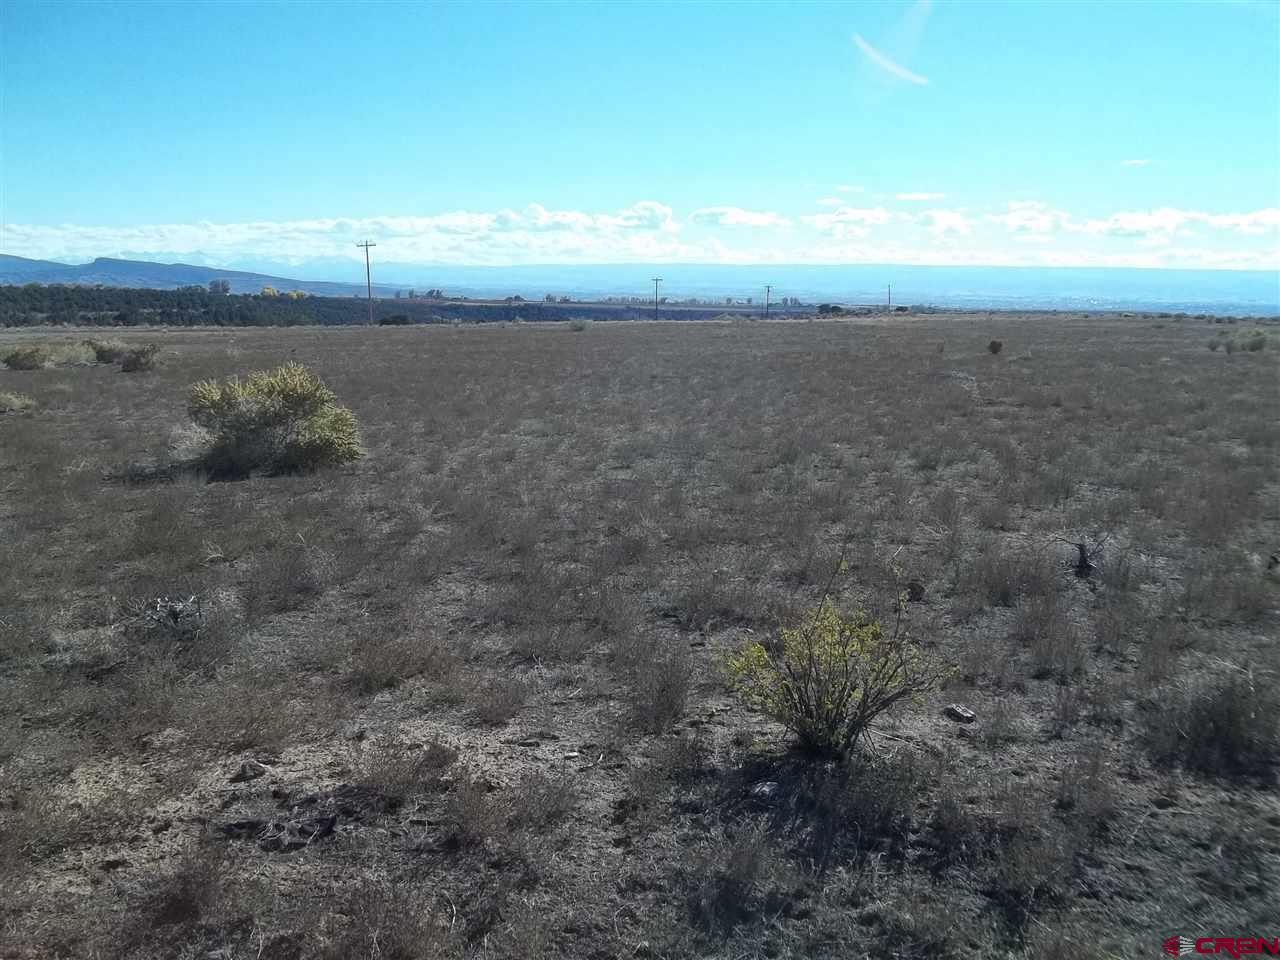 Enjoy terrific views from this Cedar Mesa parcel. 14 acres borders Oriole's Road and has great building sites. The bulk of the land slopes south but the east line goes over the hill to the bottom of Dry Creek.  The utilities are nearby.